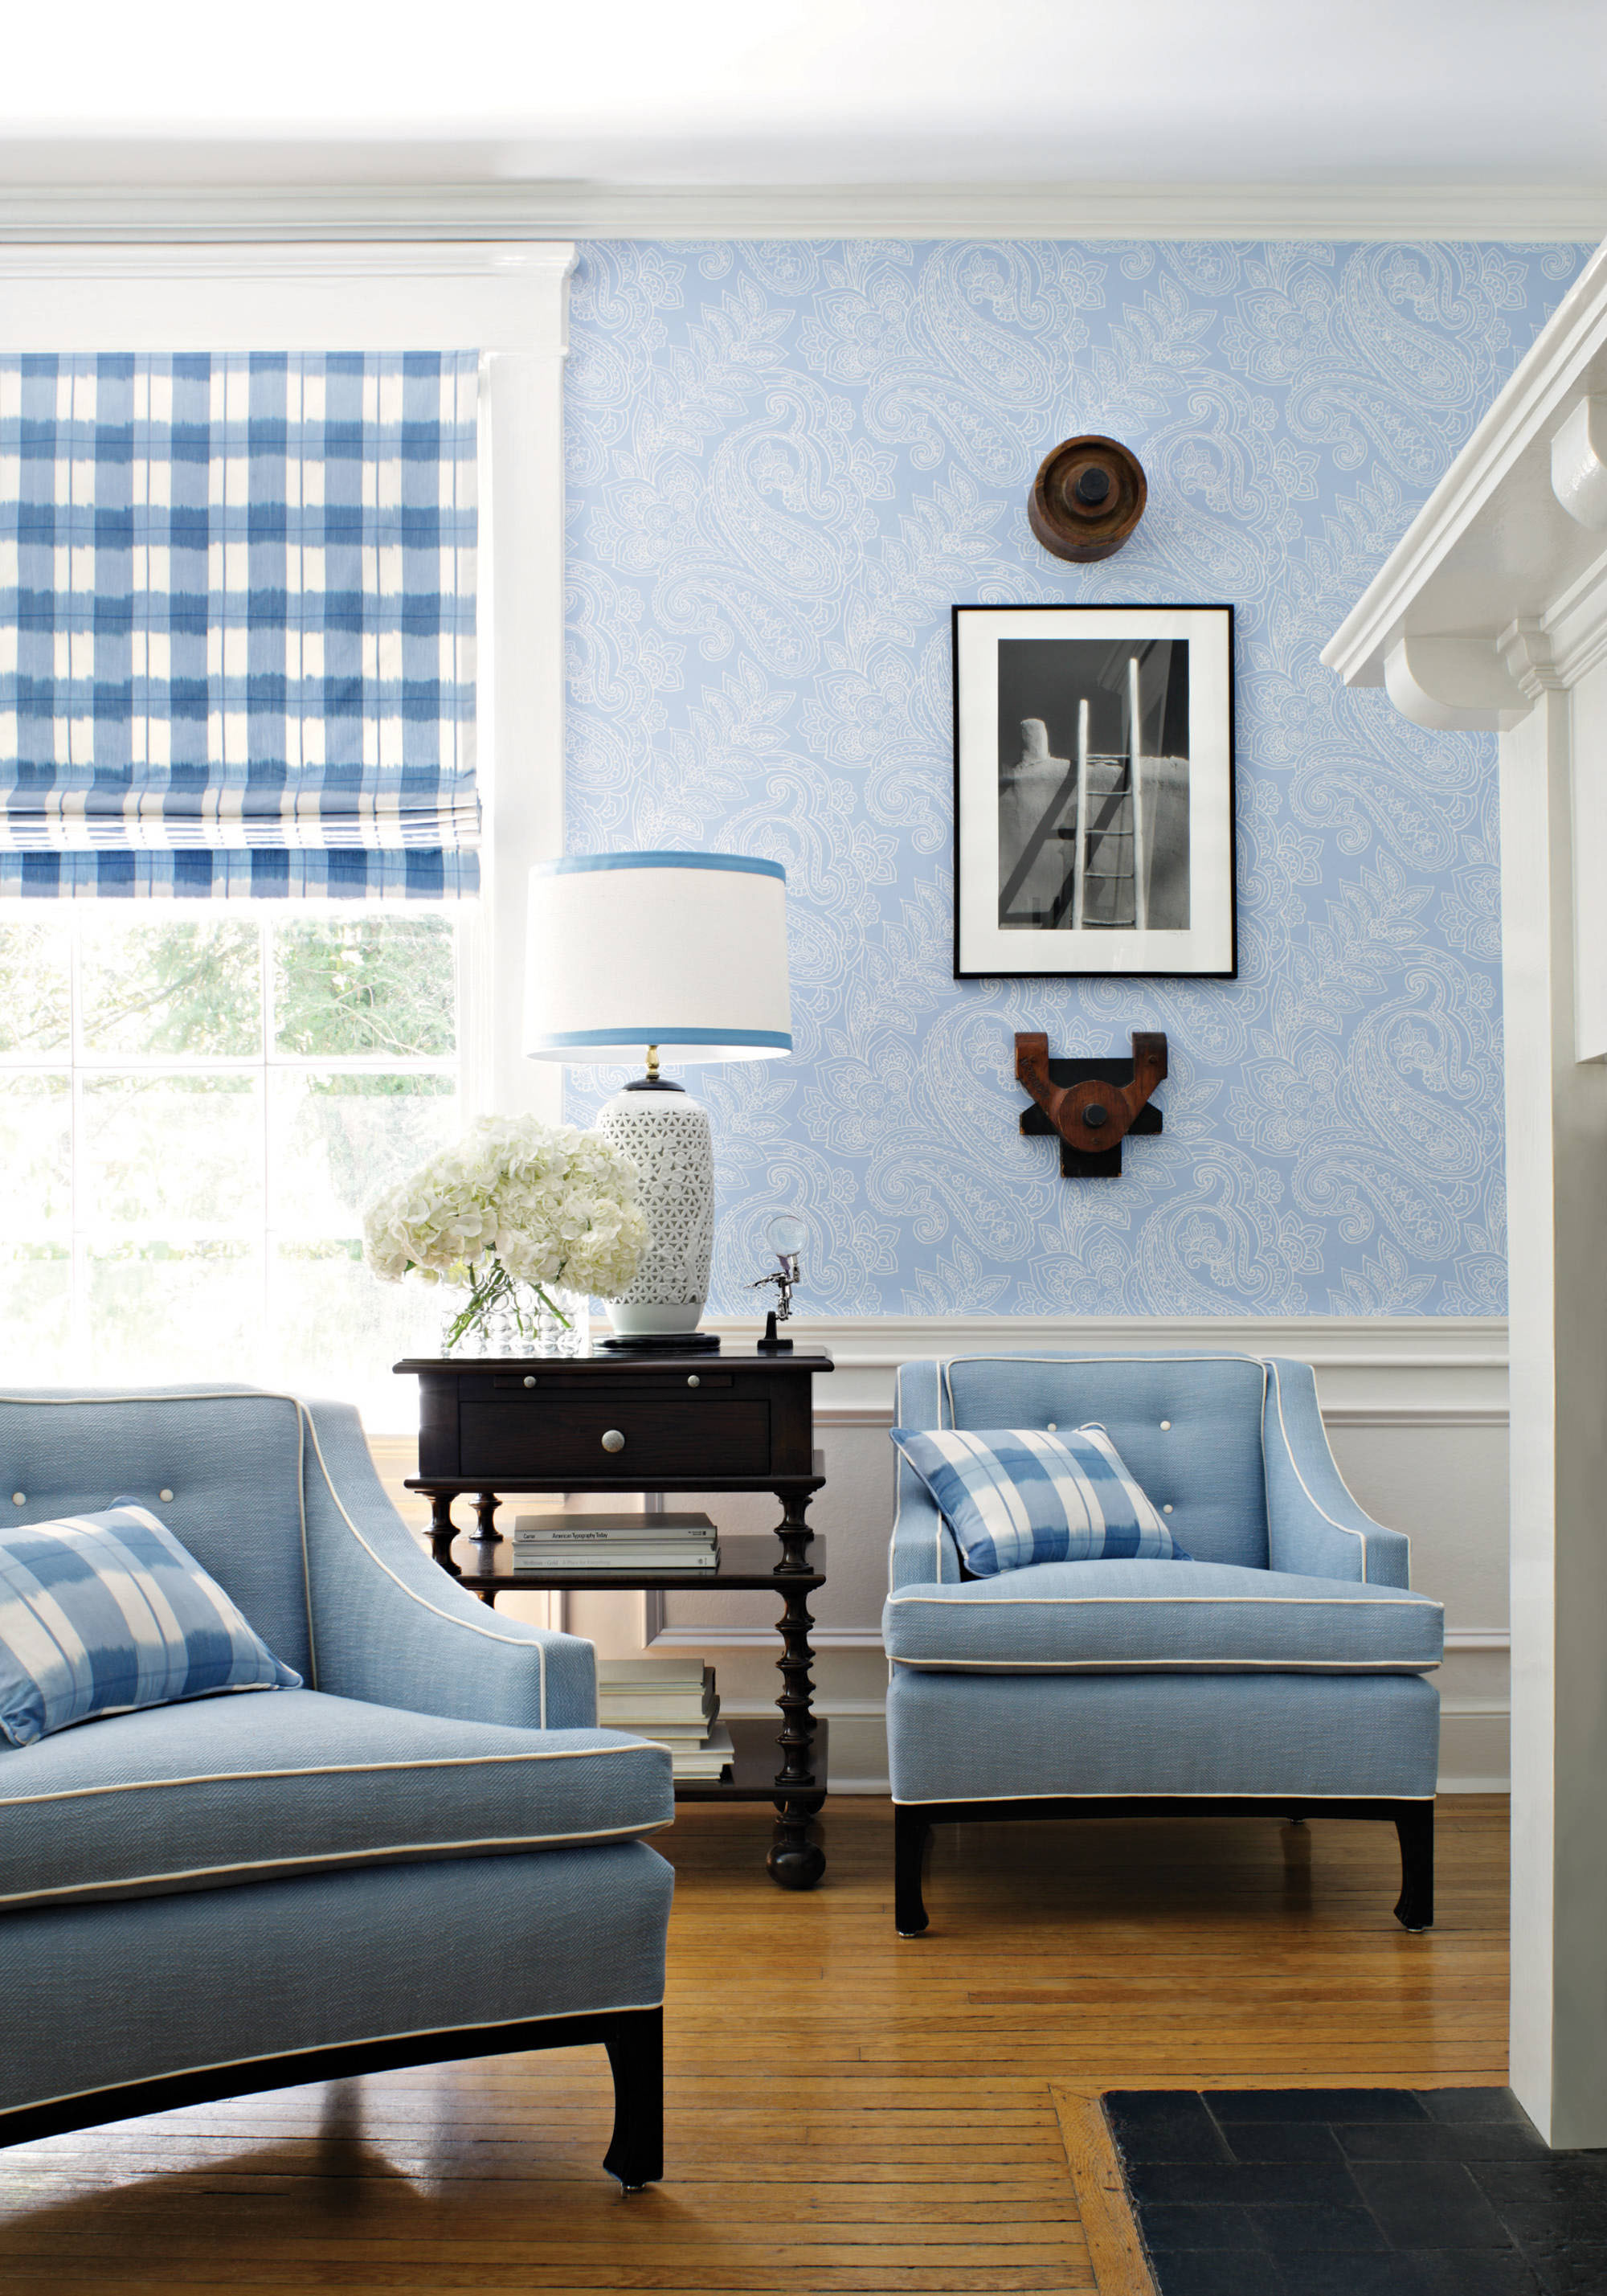 Fresh Blue Sitting Room with Blue and White Wallpaper and Gingham Curtains